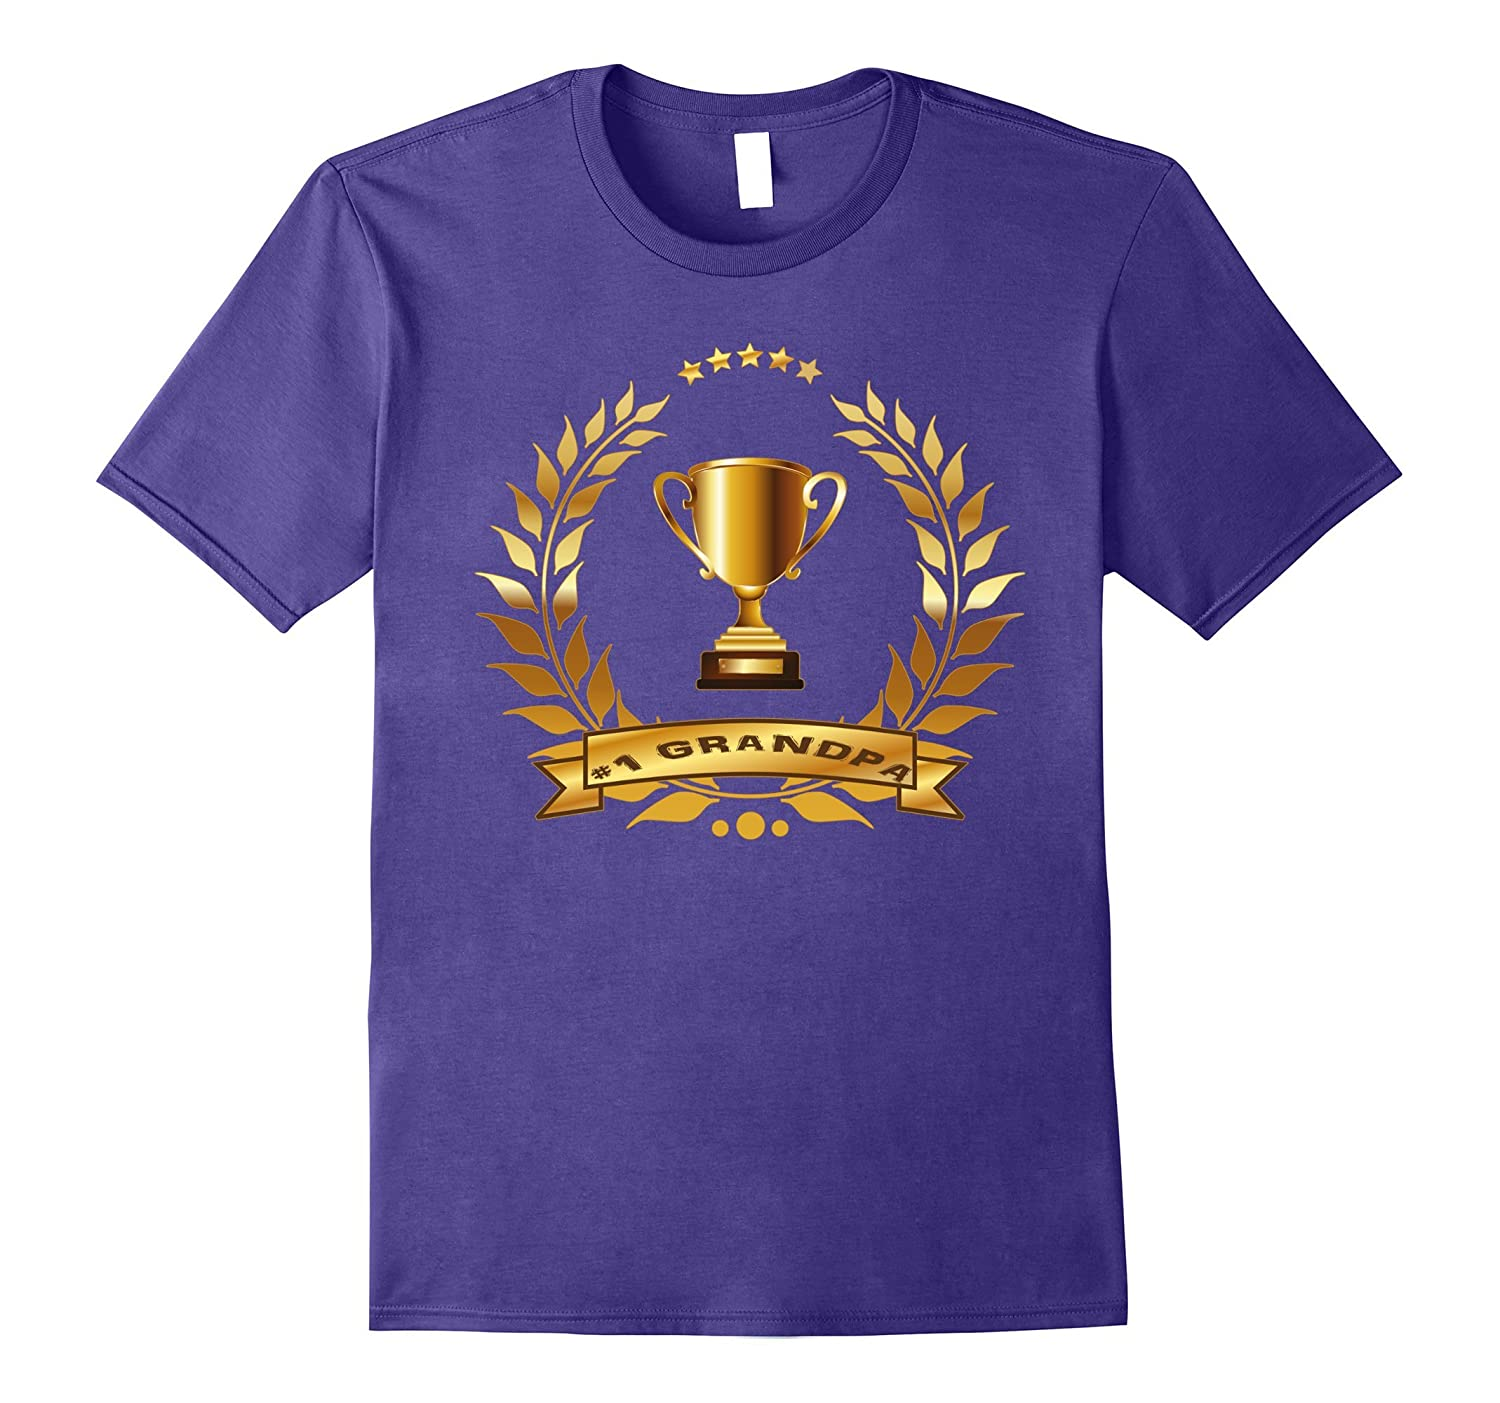 #1 Grandpa T-Shirt With Trophy- Gift For Grandpa